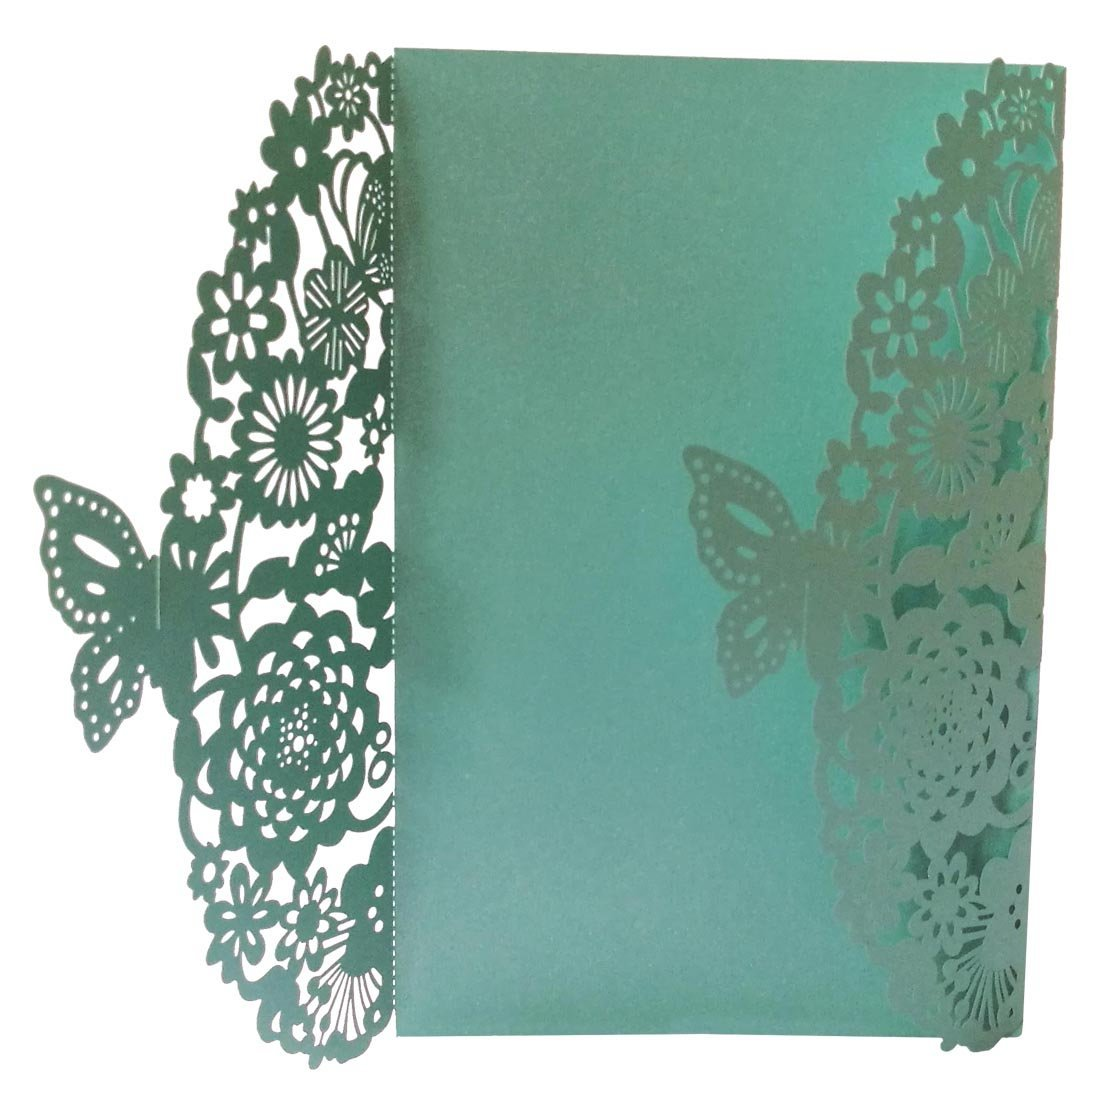 SODIAL(R) 10Pcs/Set Delicate Carved Butterflies Romantic Wedding Party Invitation Card Envelope Invitations for Wedding£ºBlue Green